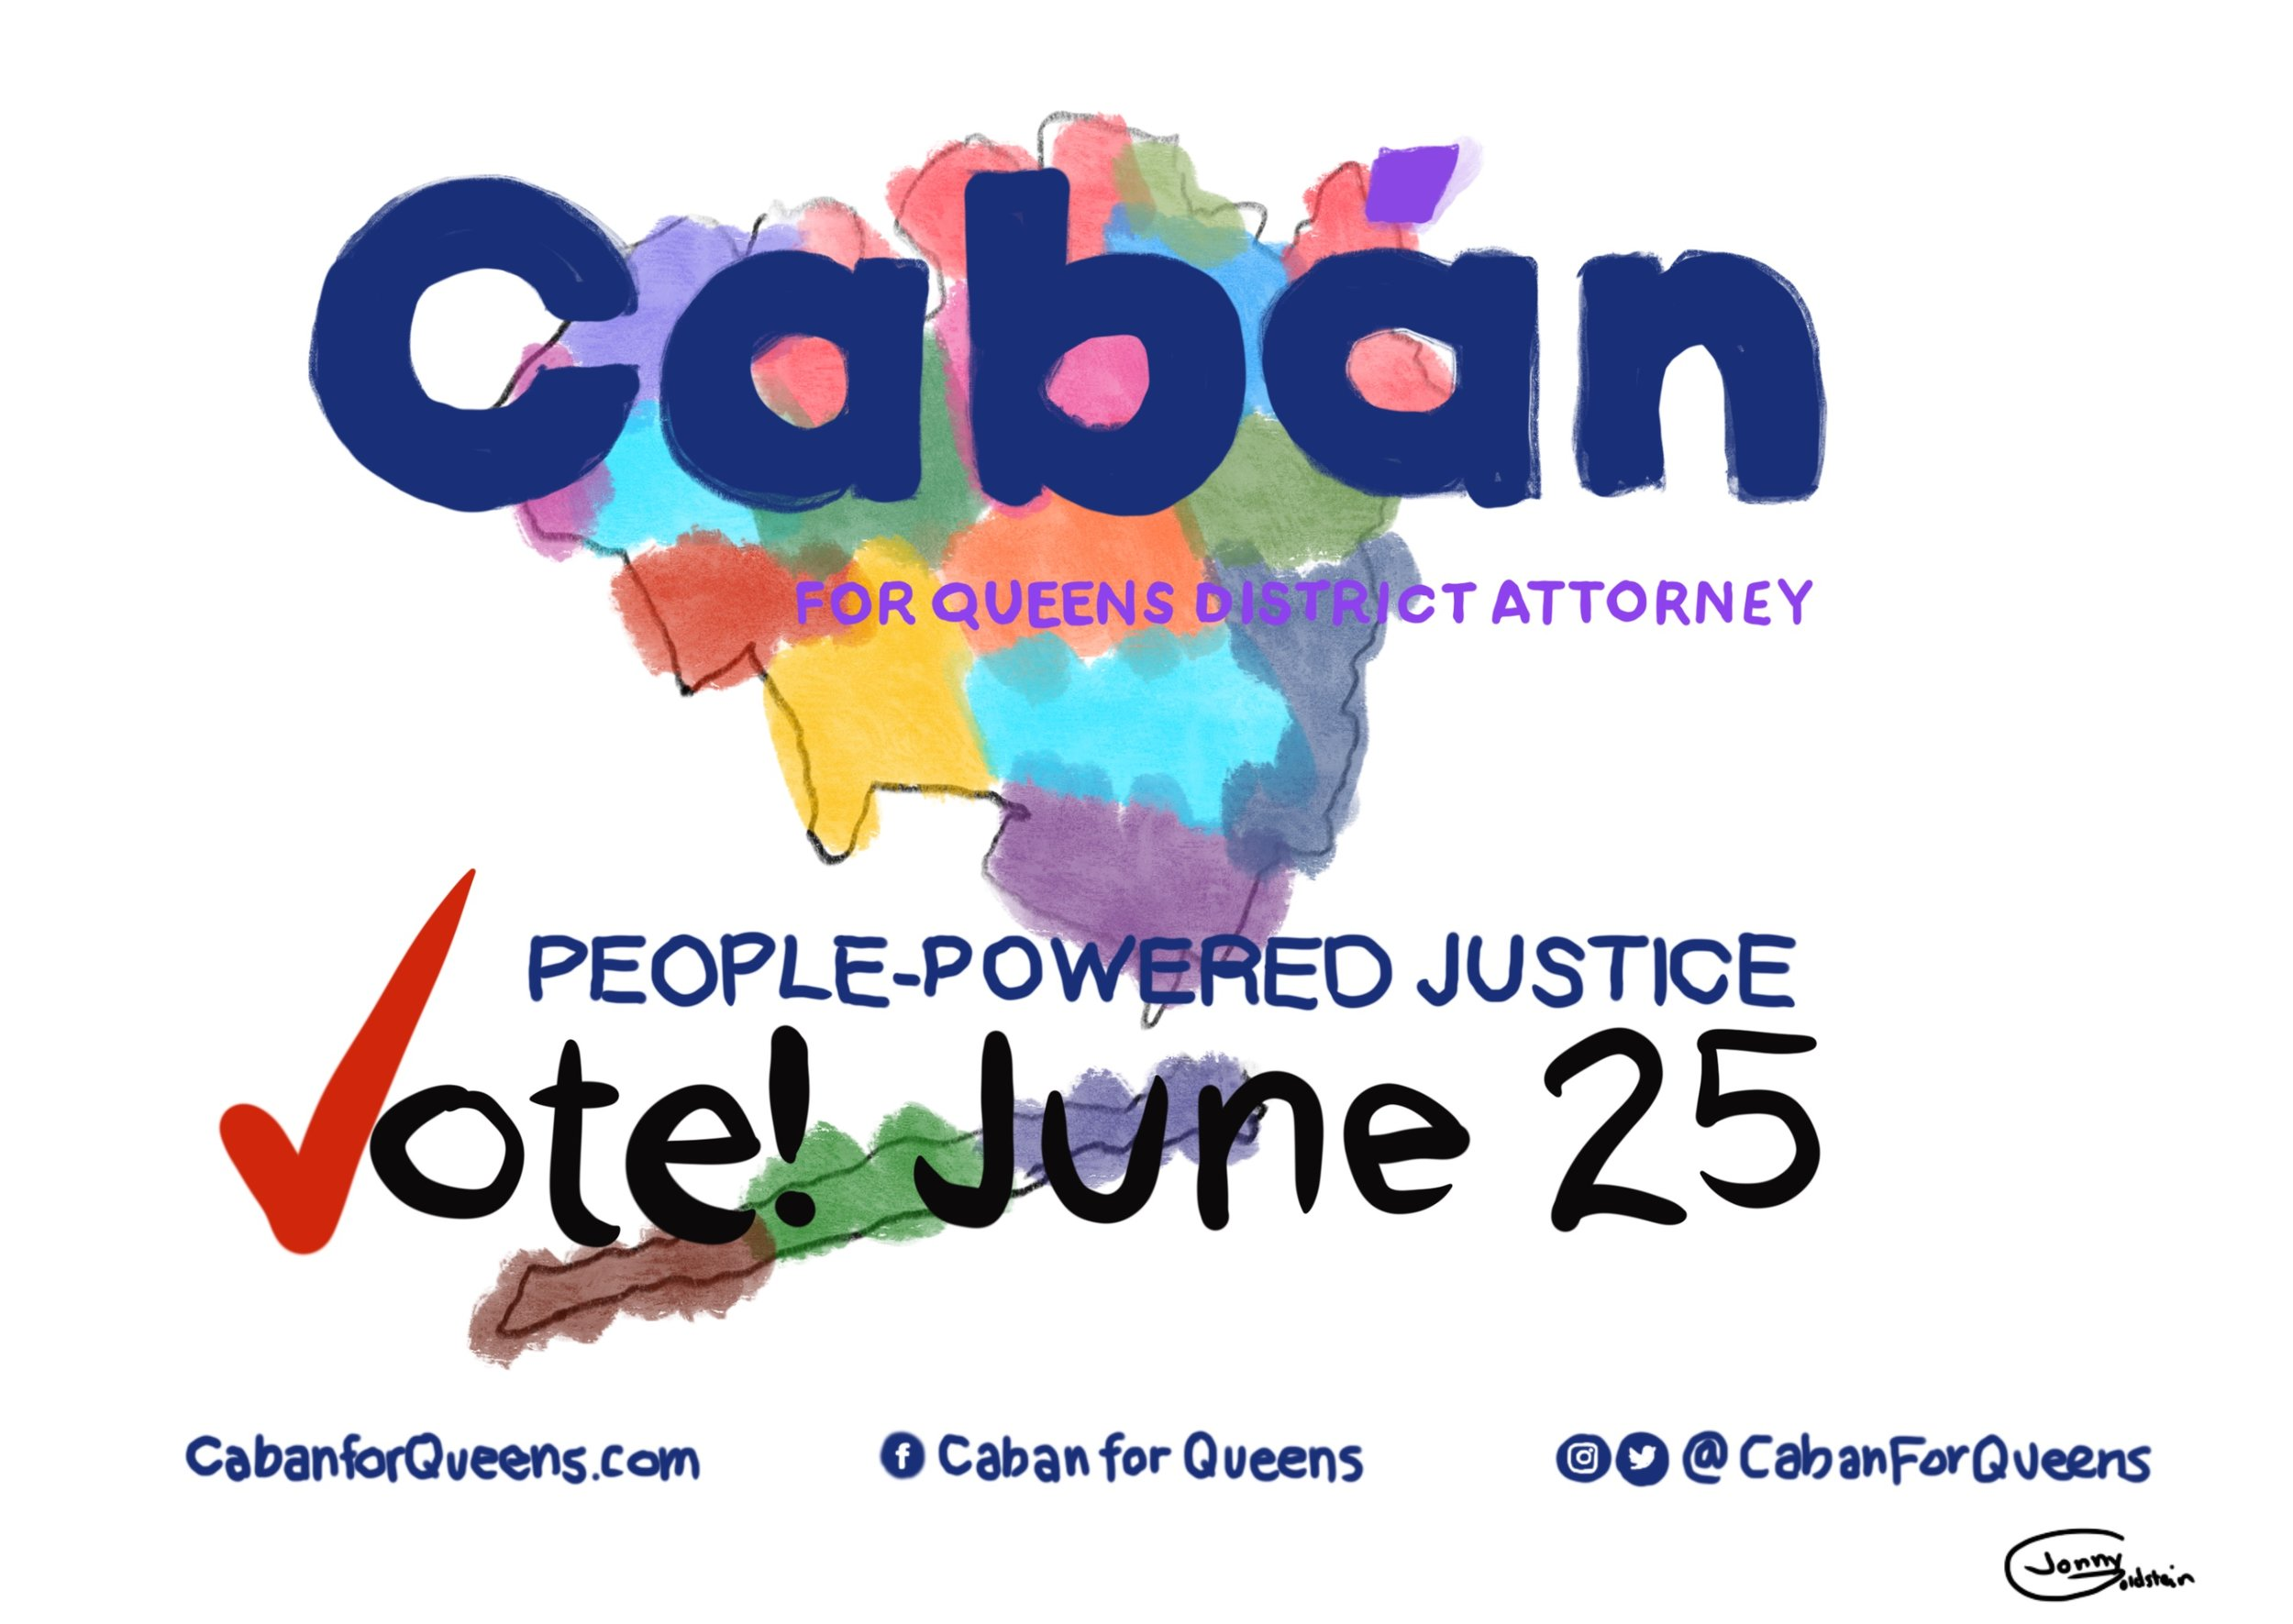 This postcard was commissioned for Queens District Attorney candidate Tiffany Caban's campaign. Medium and tools: digital painting and illustration using a painting app on an iPad digital painting and illustration using painting app on an iPad.